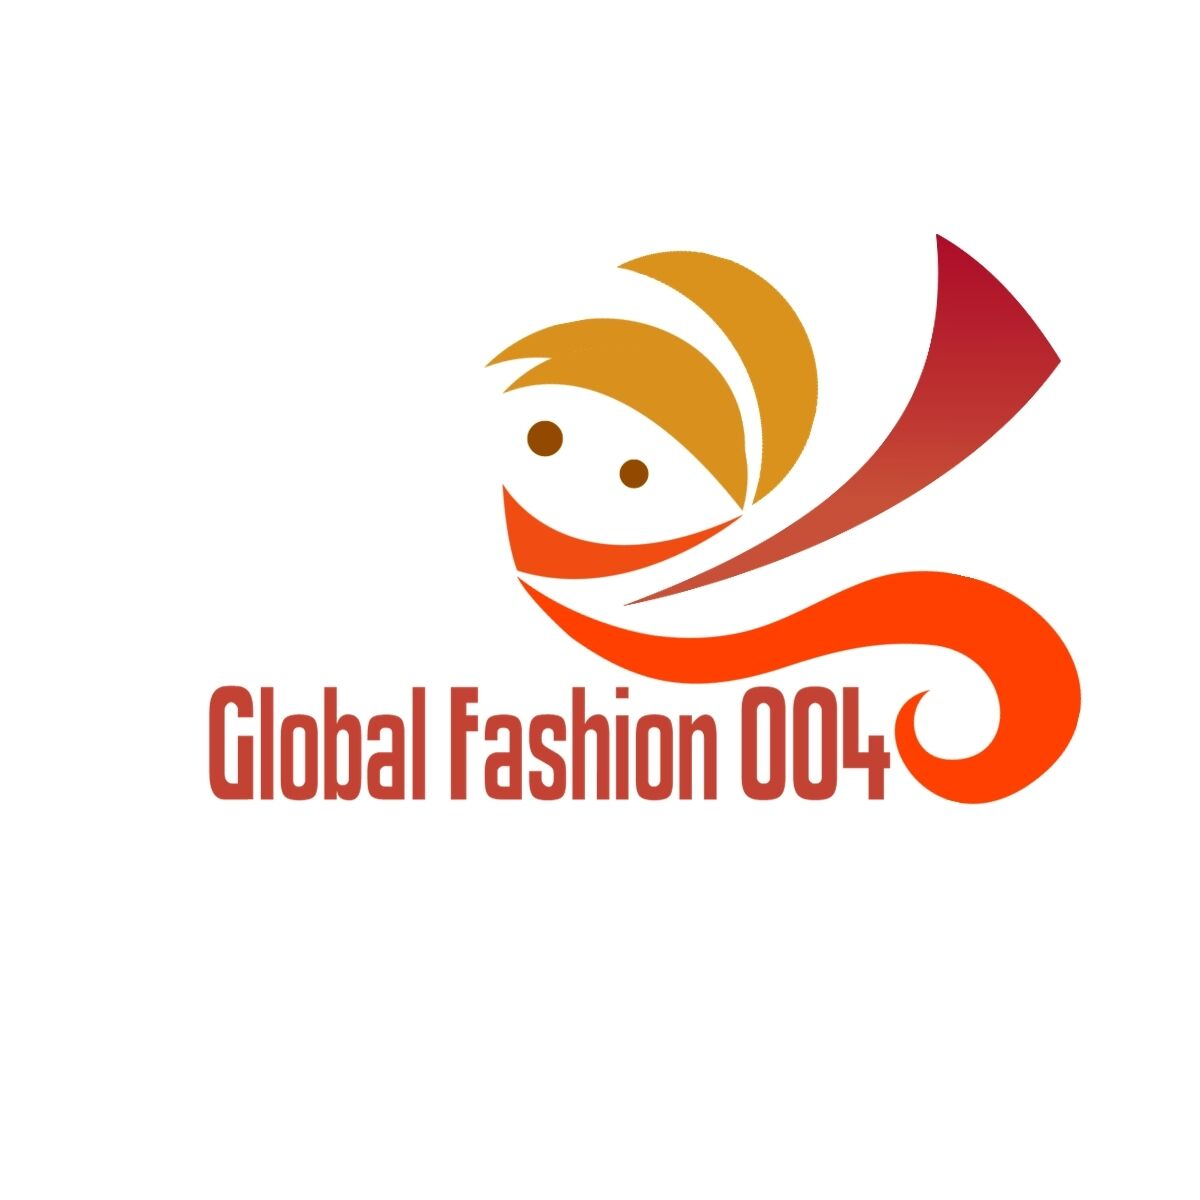 global-fashion-004